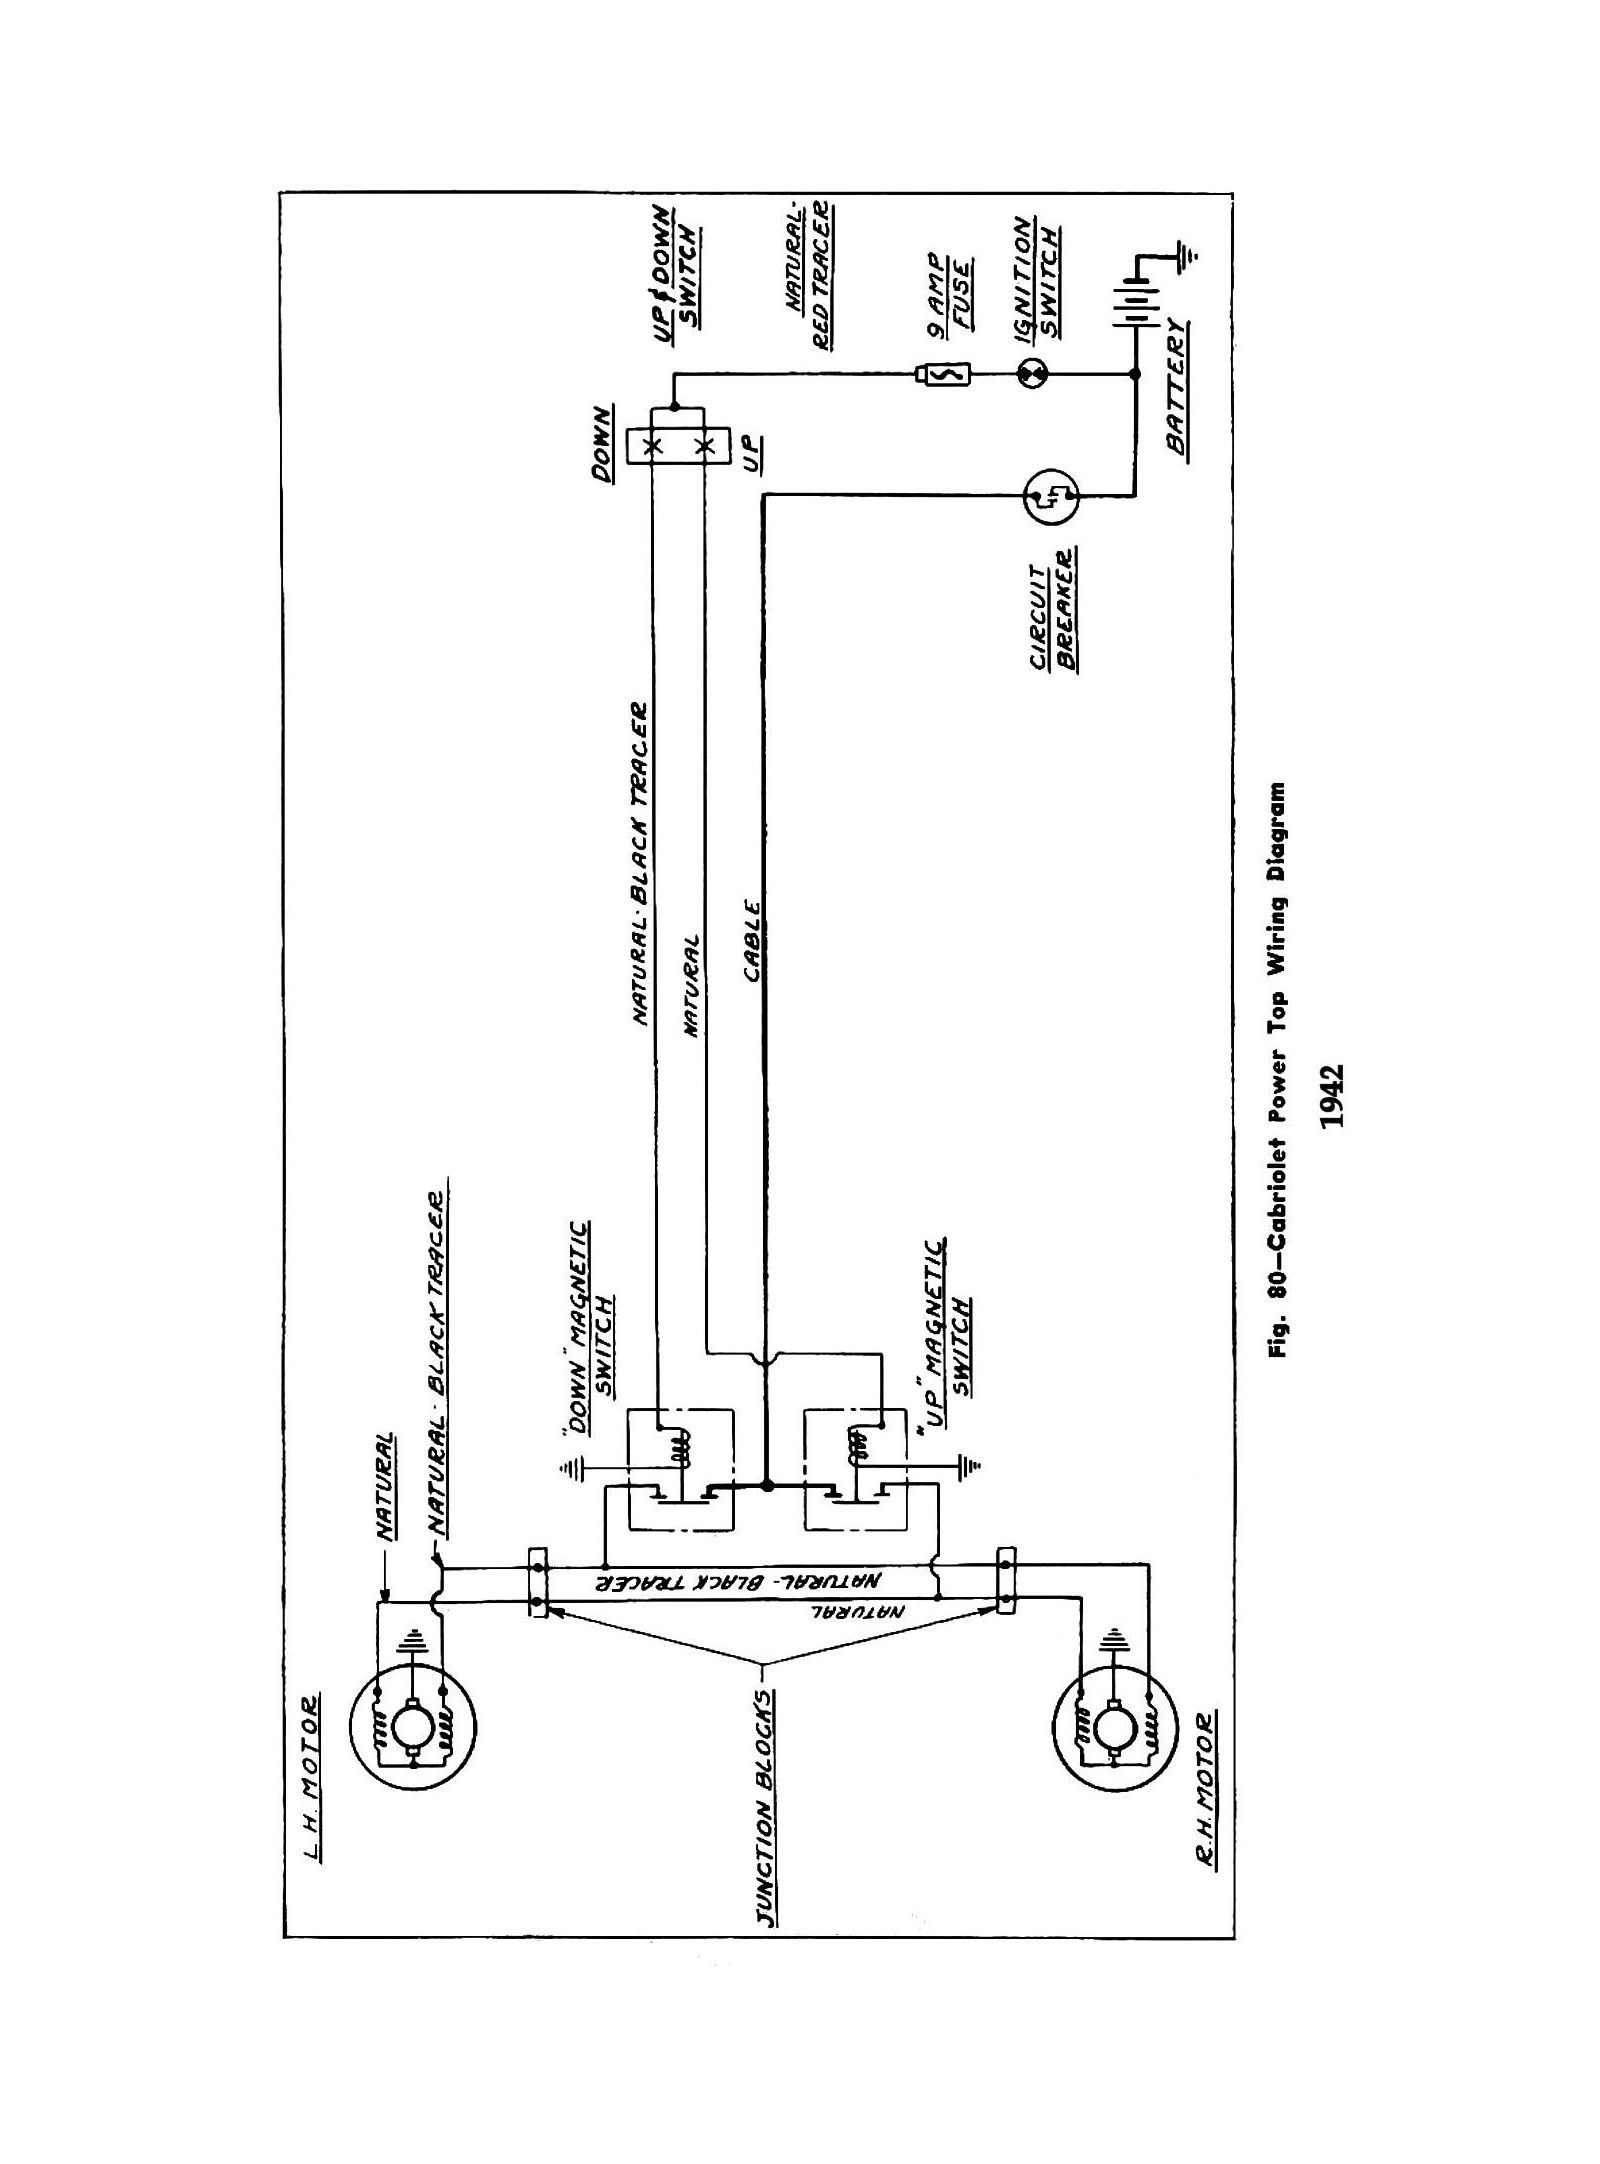 dodge ram headlight wiring diagram free picture best wiring library rh 58 princestaash org